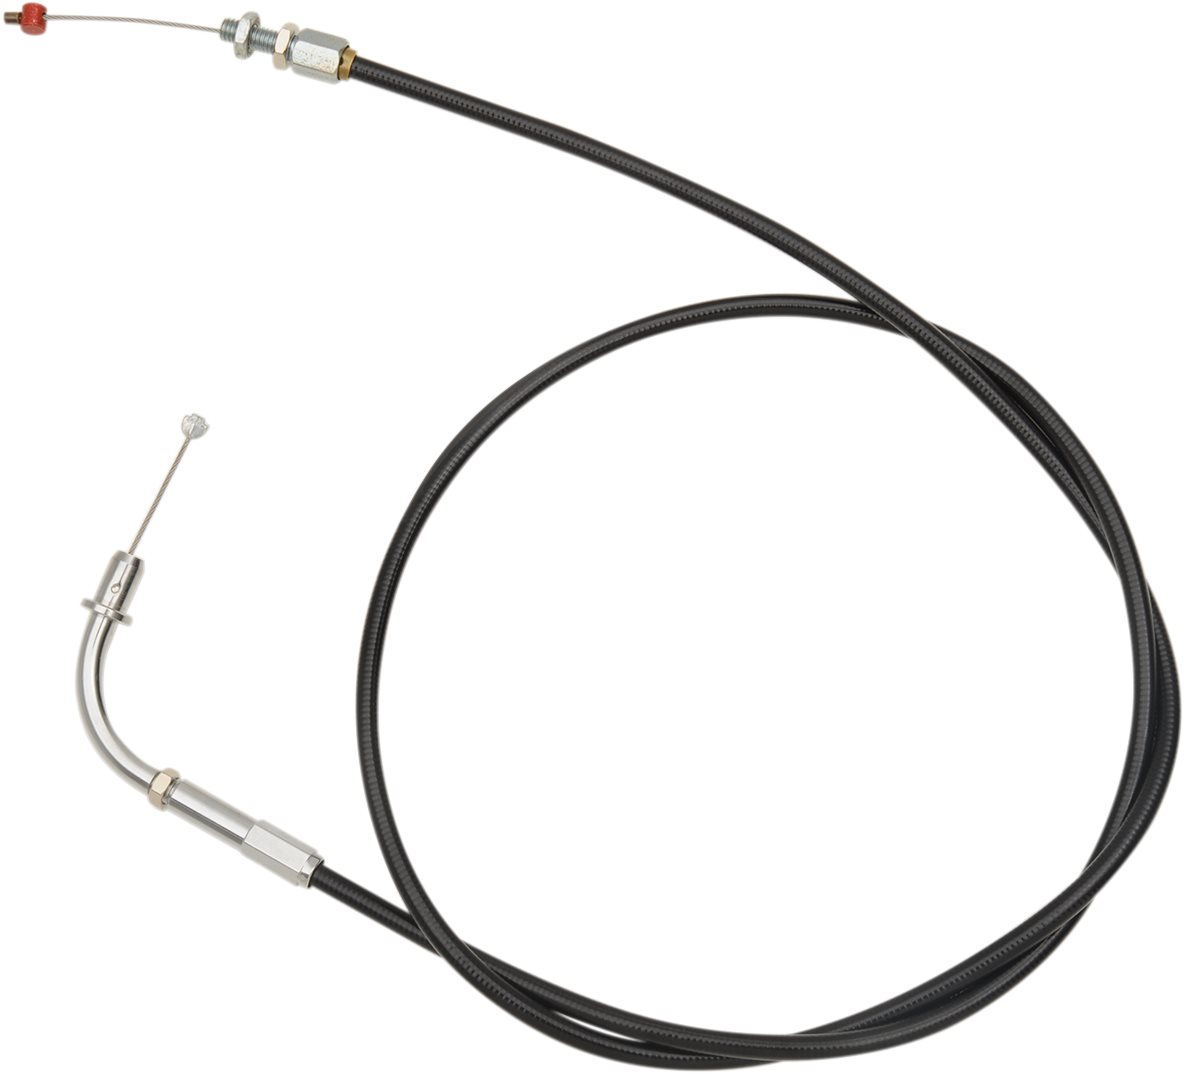 Barnett Black Vinyl Coated Clutch Cable Stock Length (101